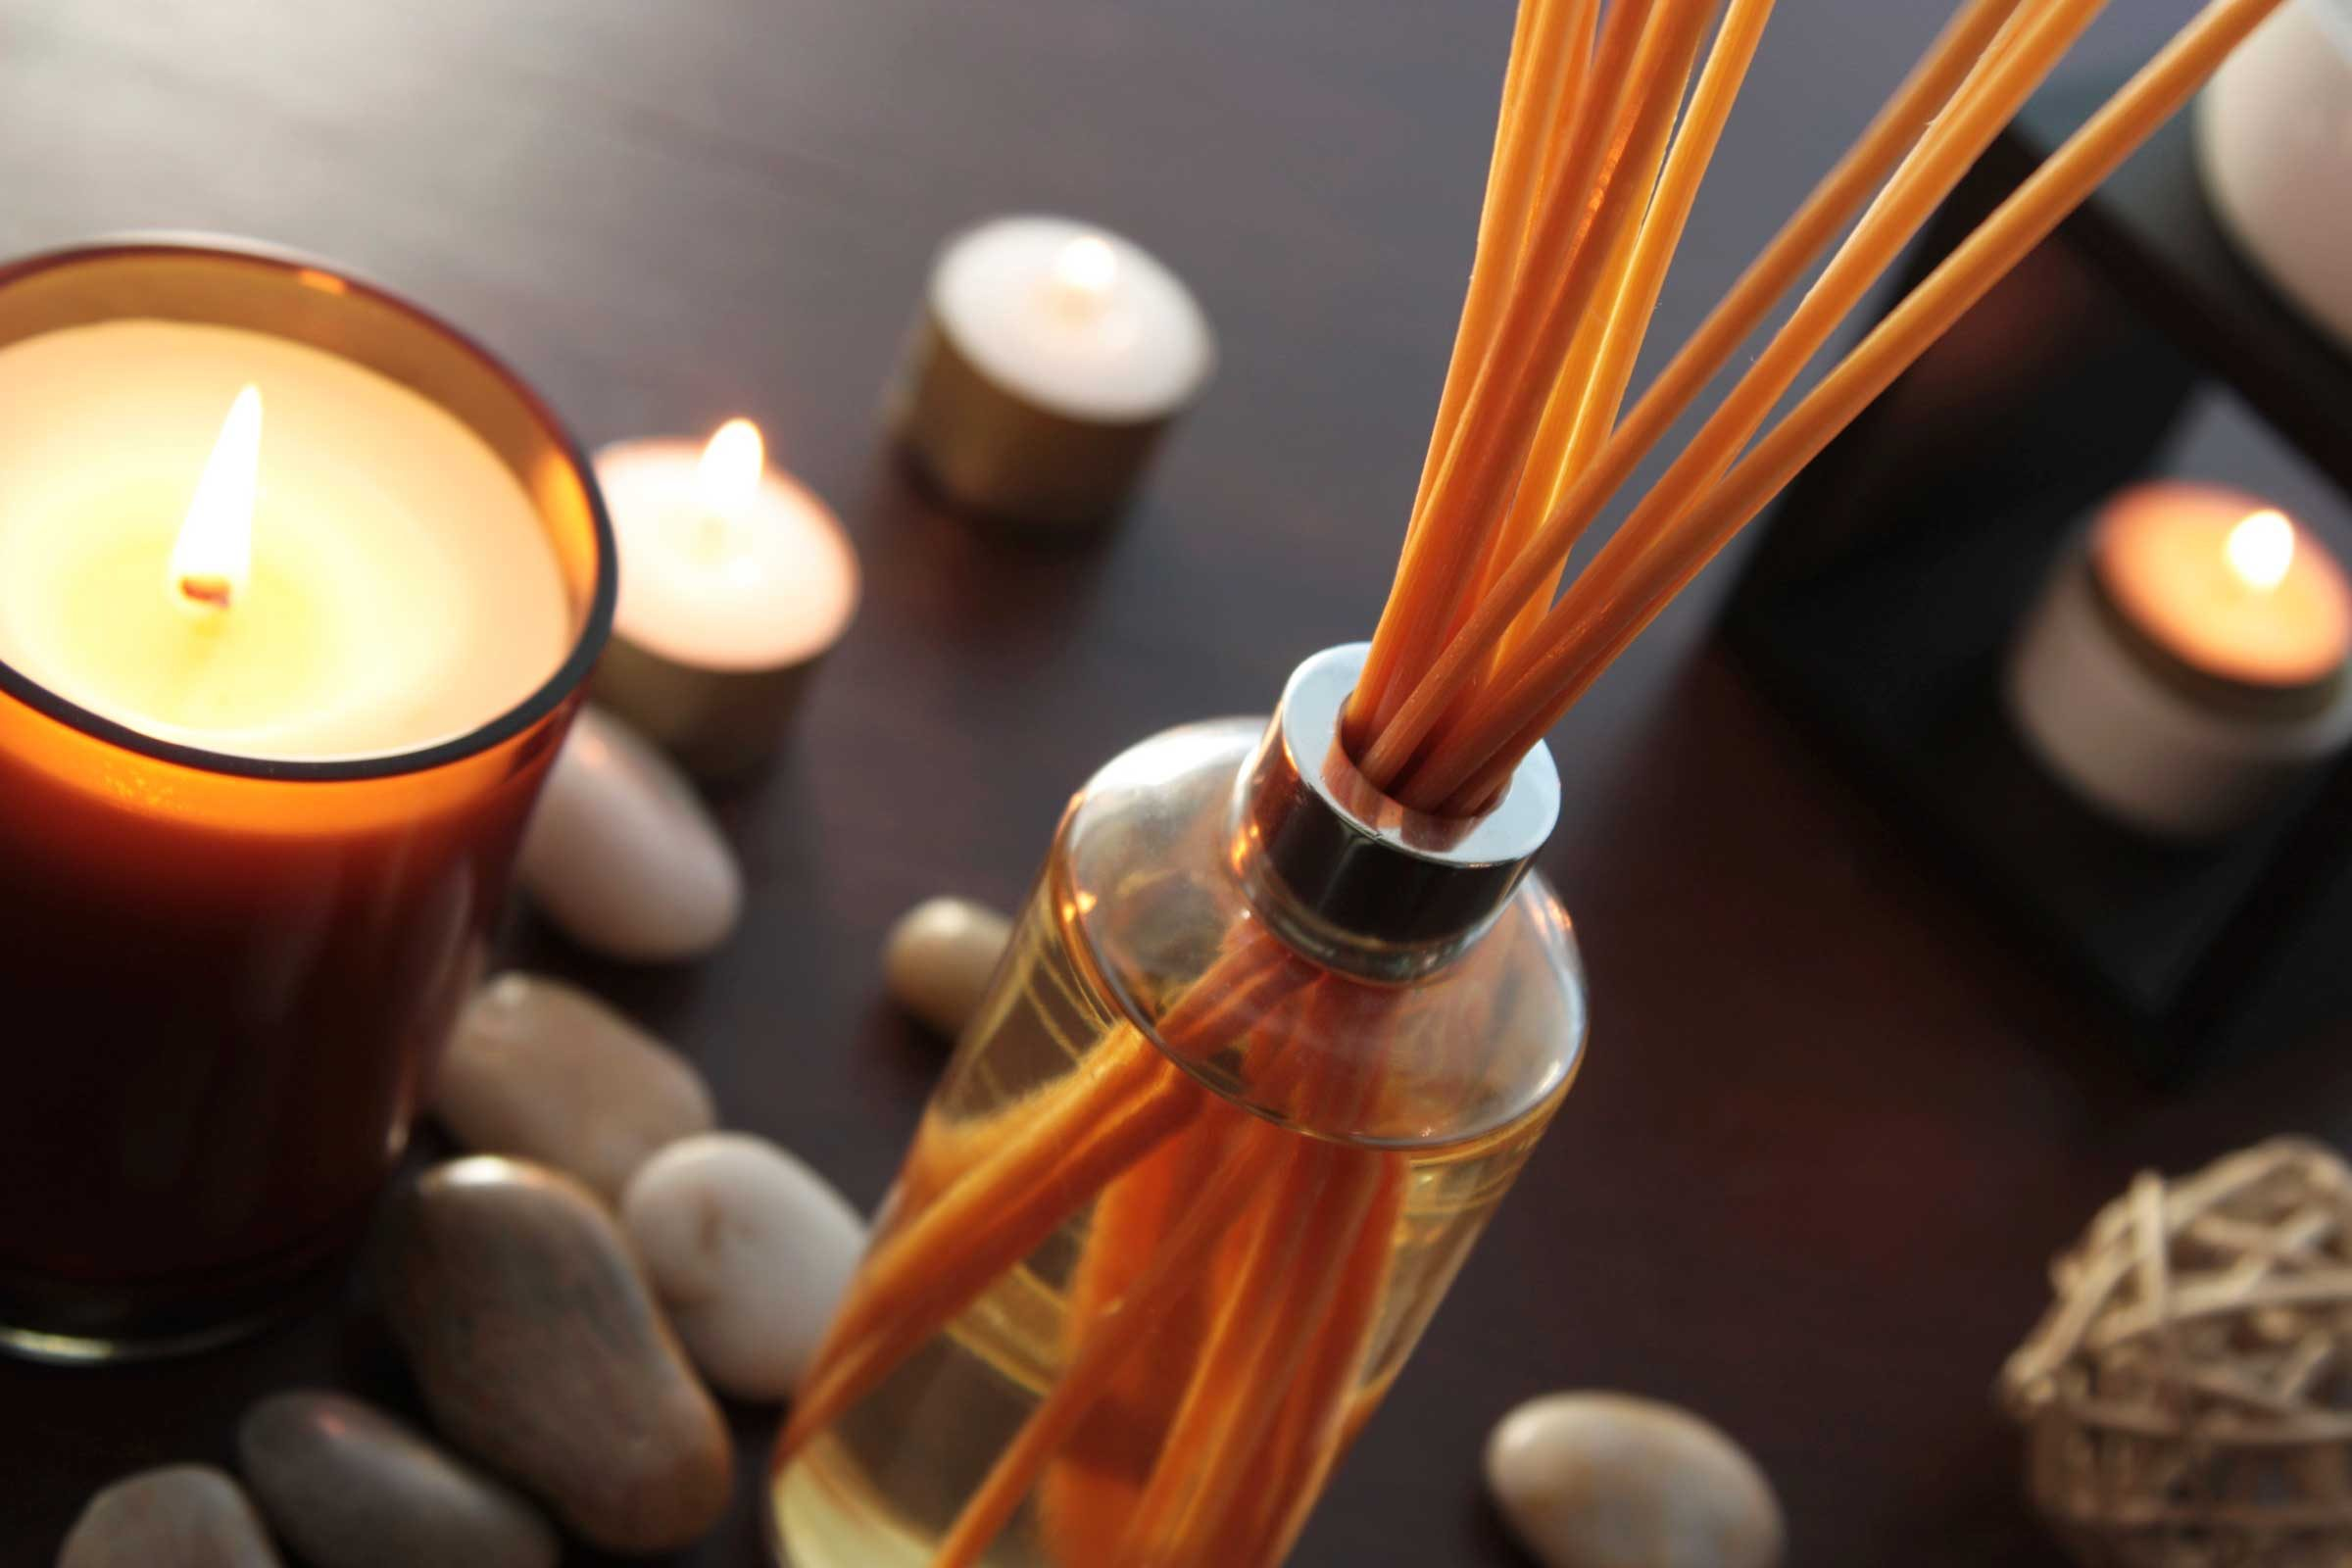 First, choose wisely between candles and diffusers